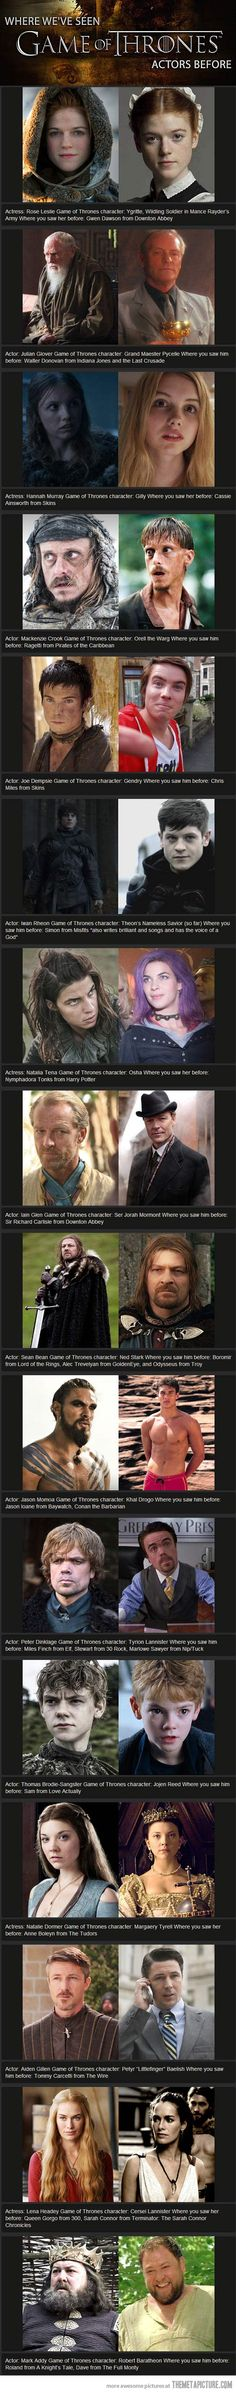 Before they were in Game of Thrones